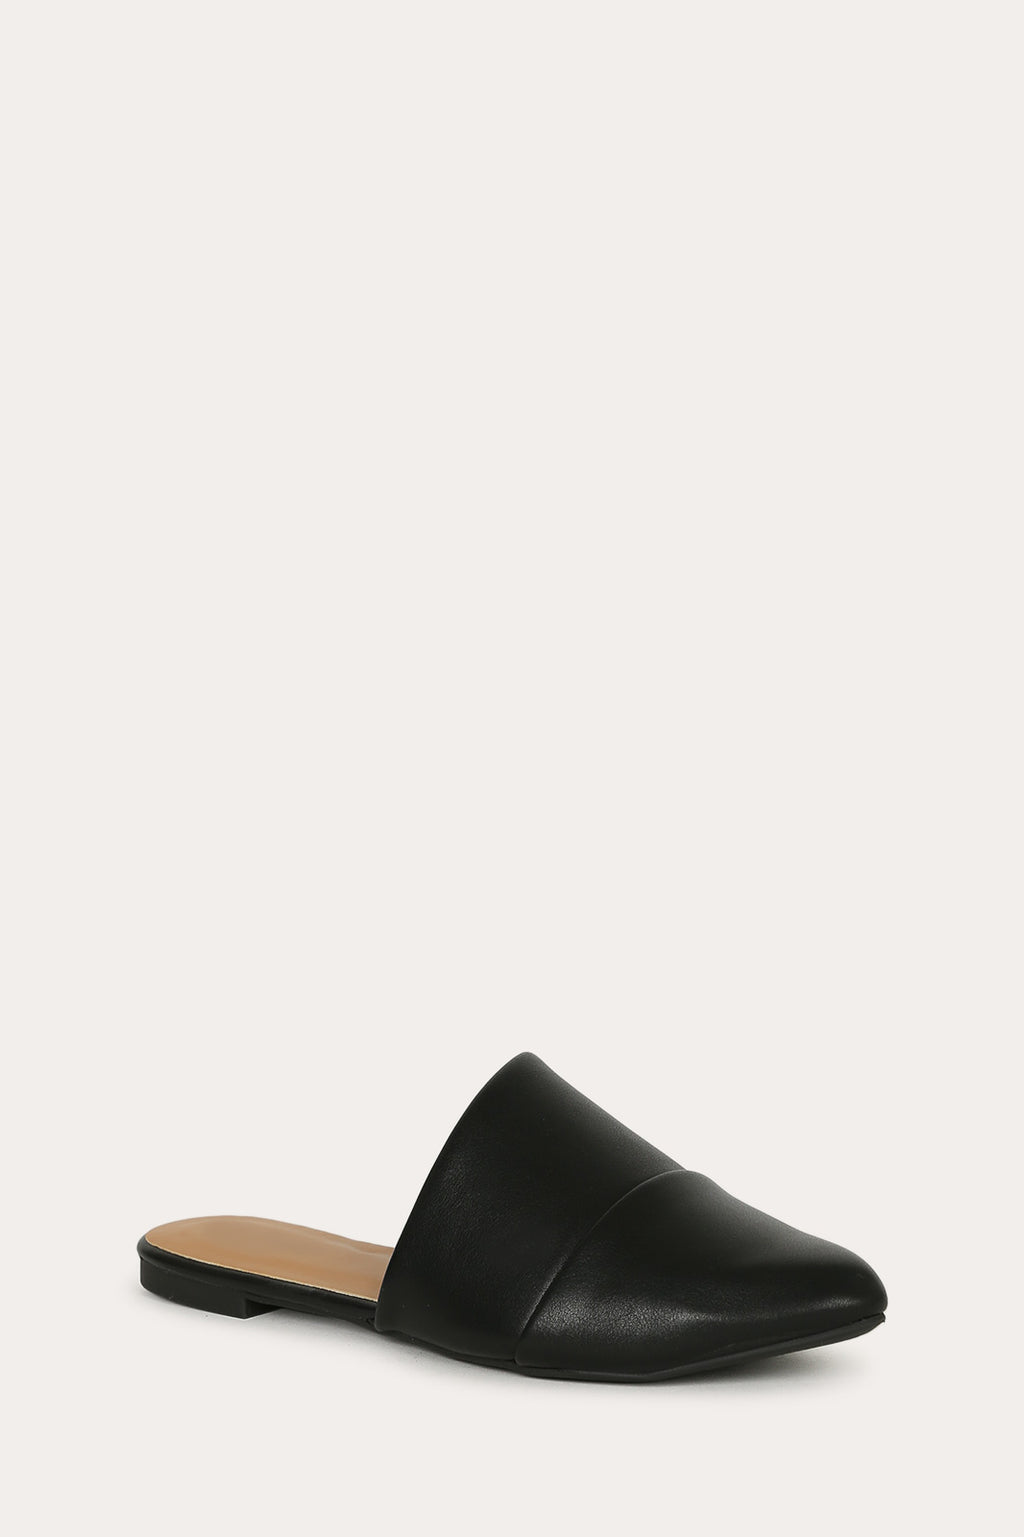 Casual Fling - Black Asymmetrical Cut Flats